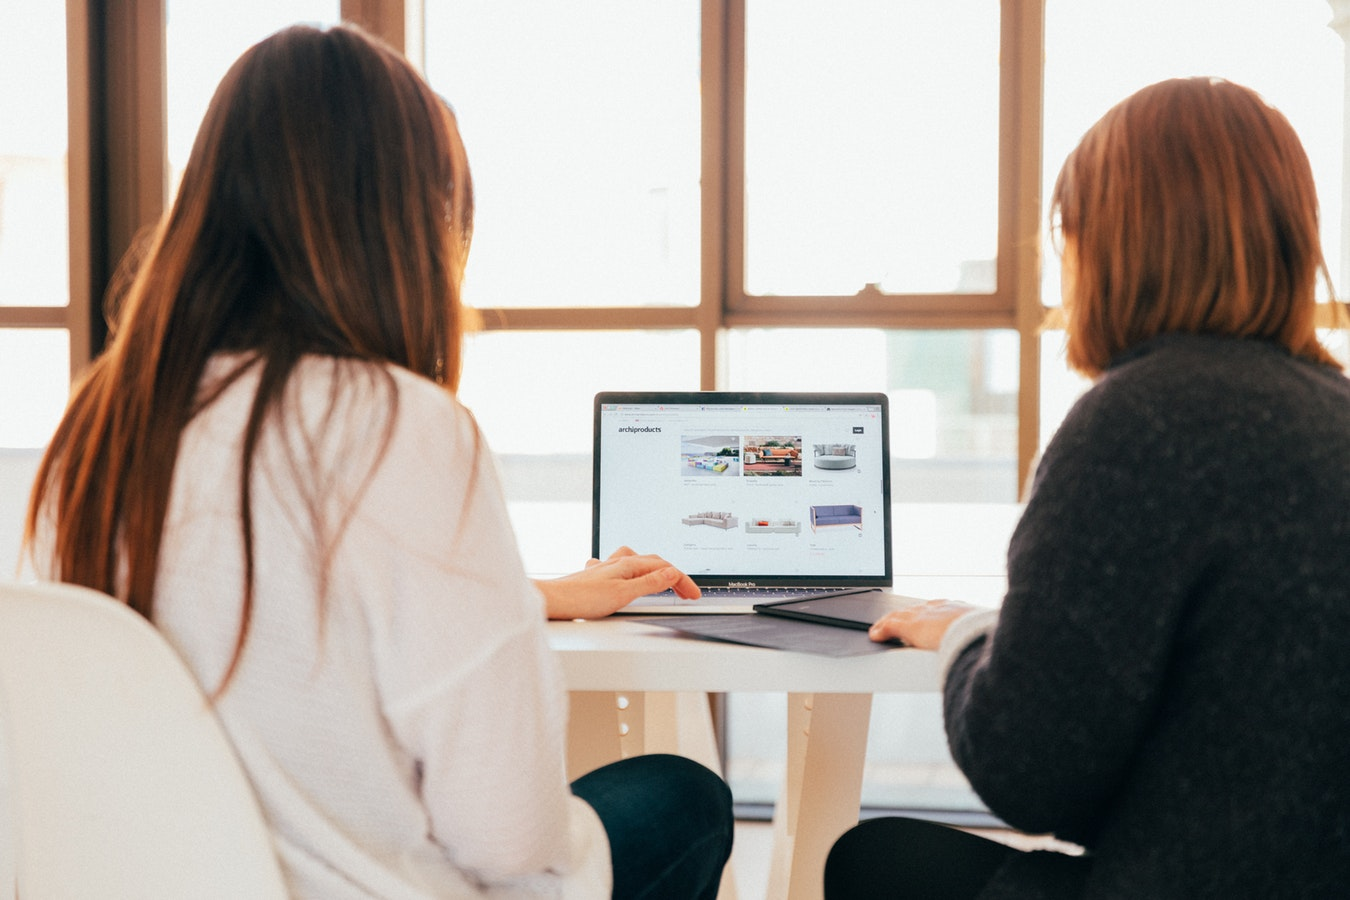 Two women sitting in front of a laptop